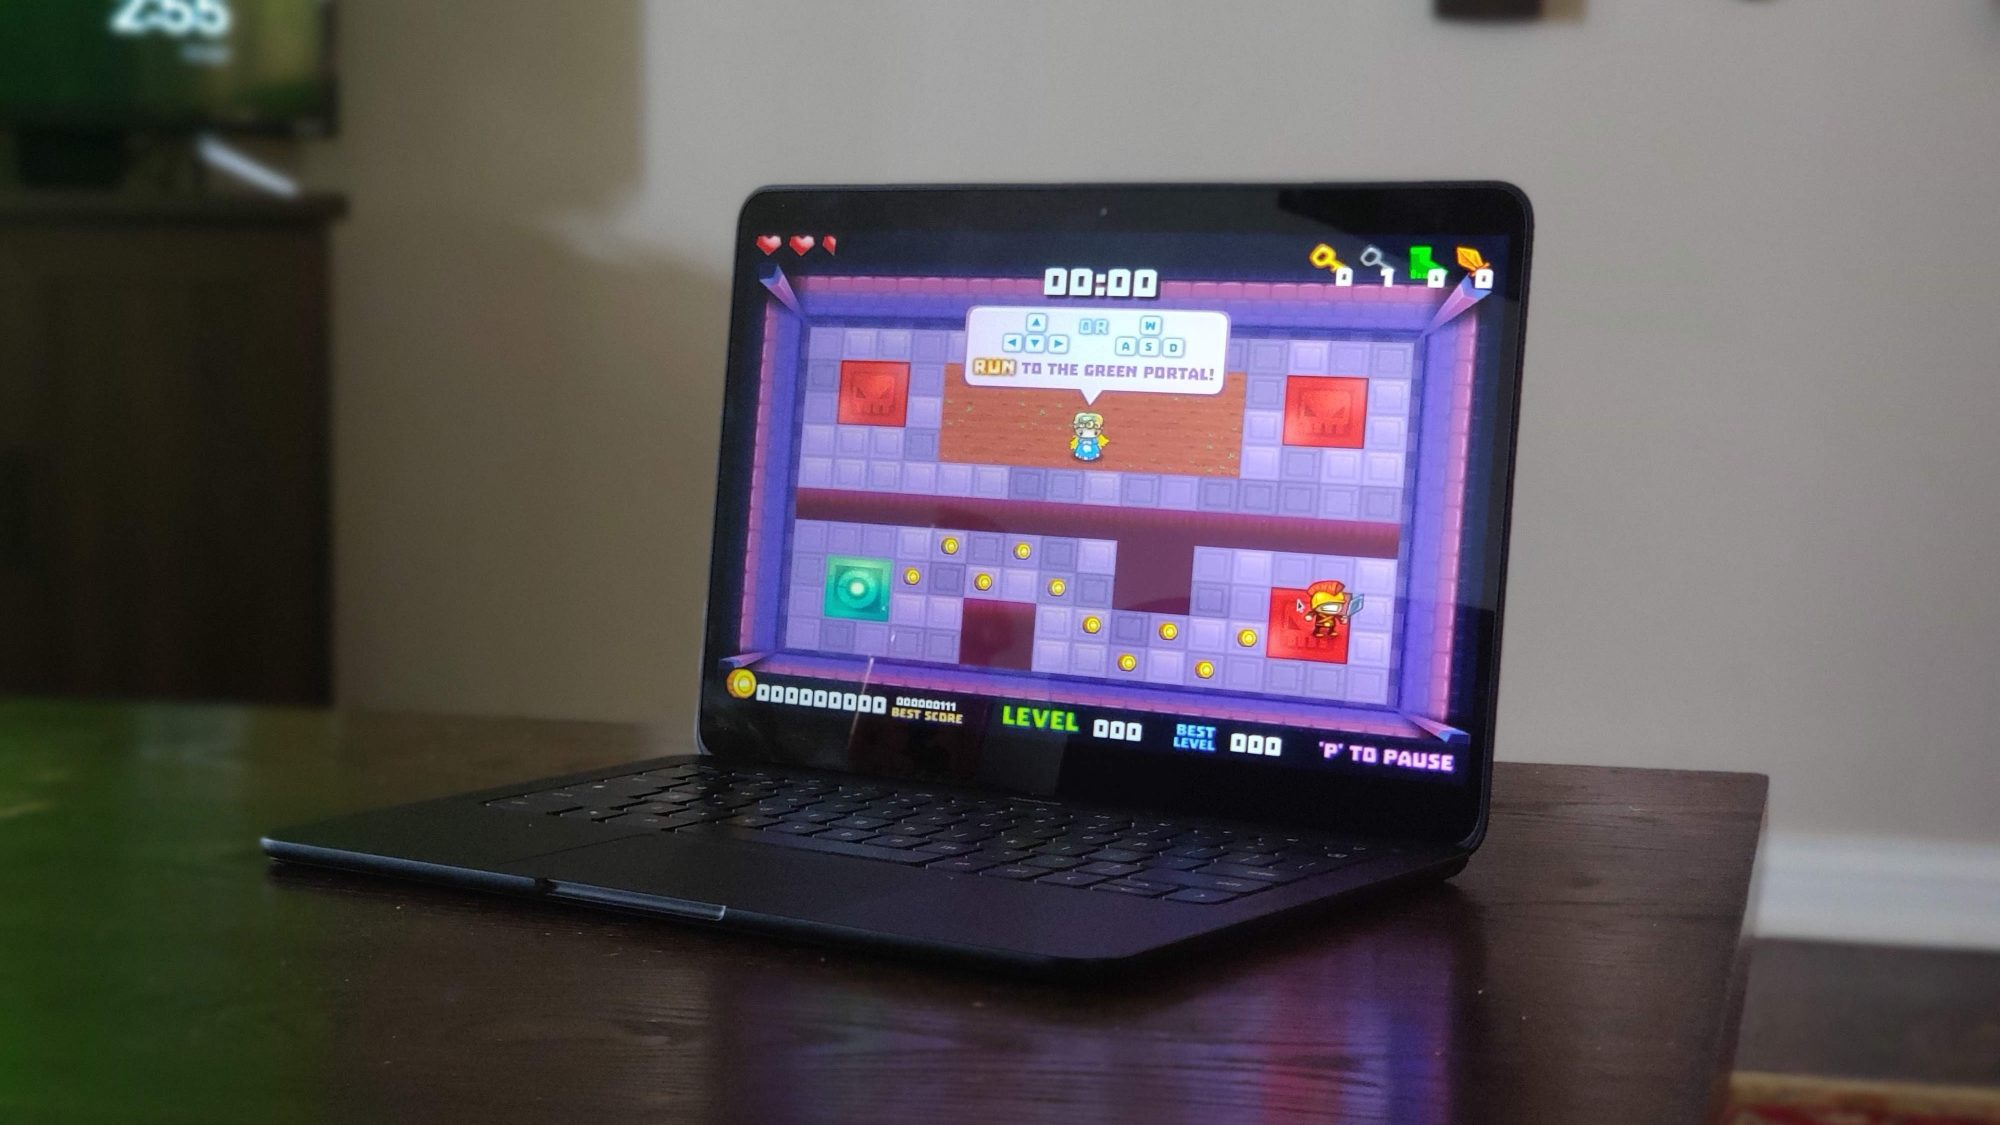 Install this standalone Shockwave player on your Chromebook and get your retro game on